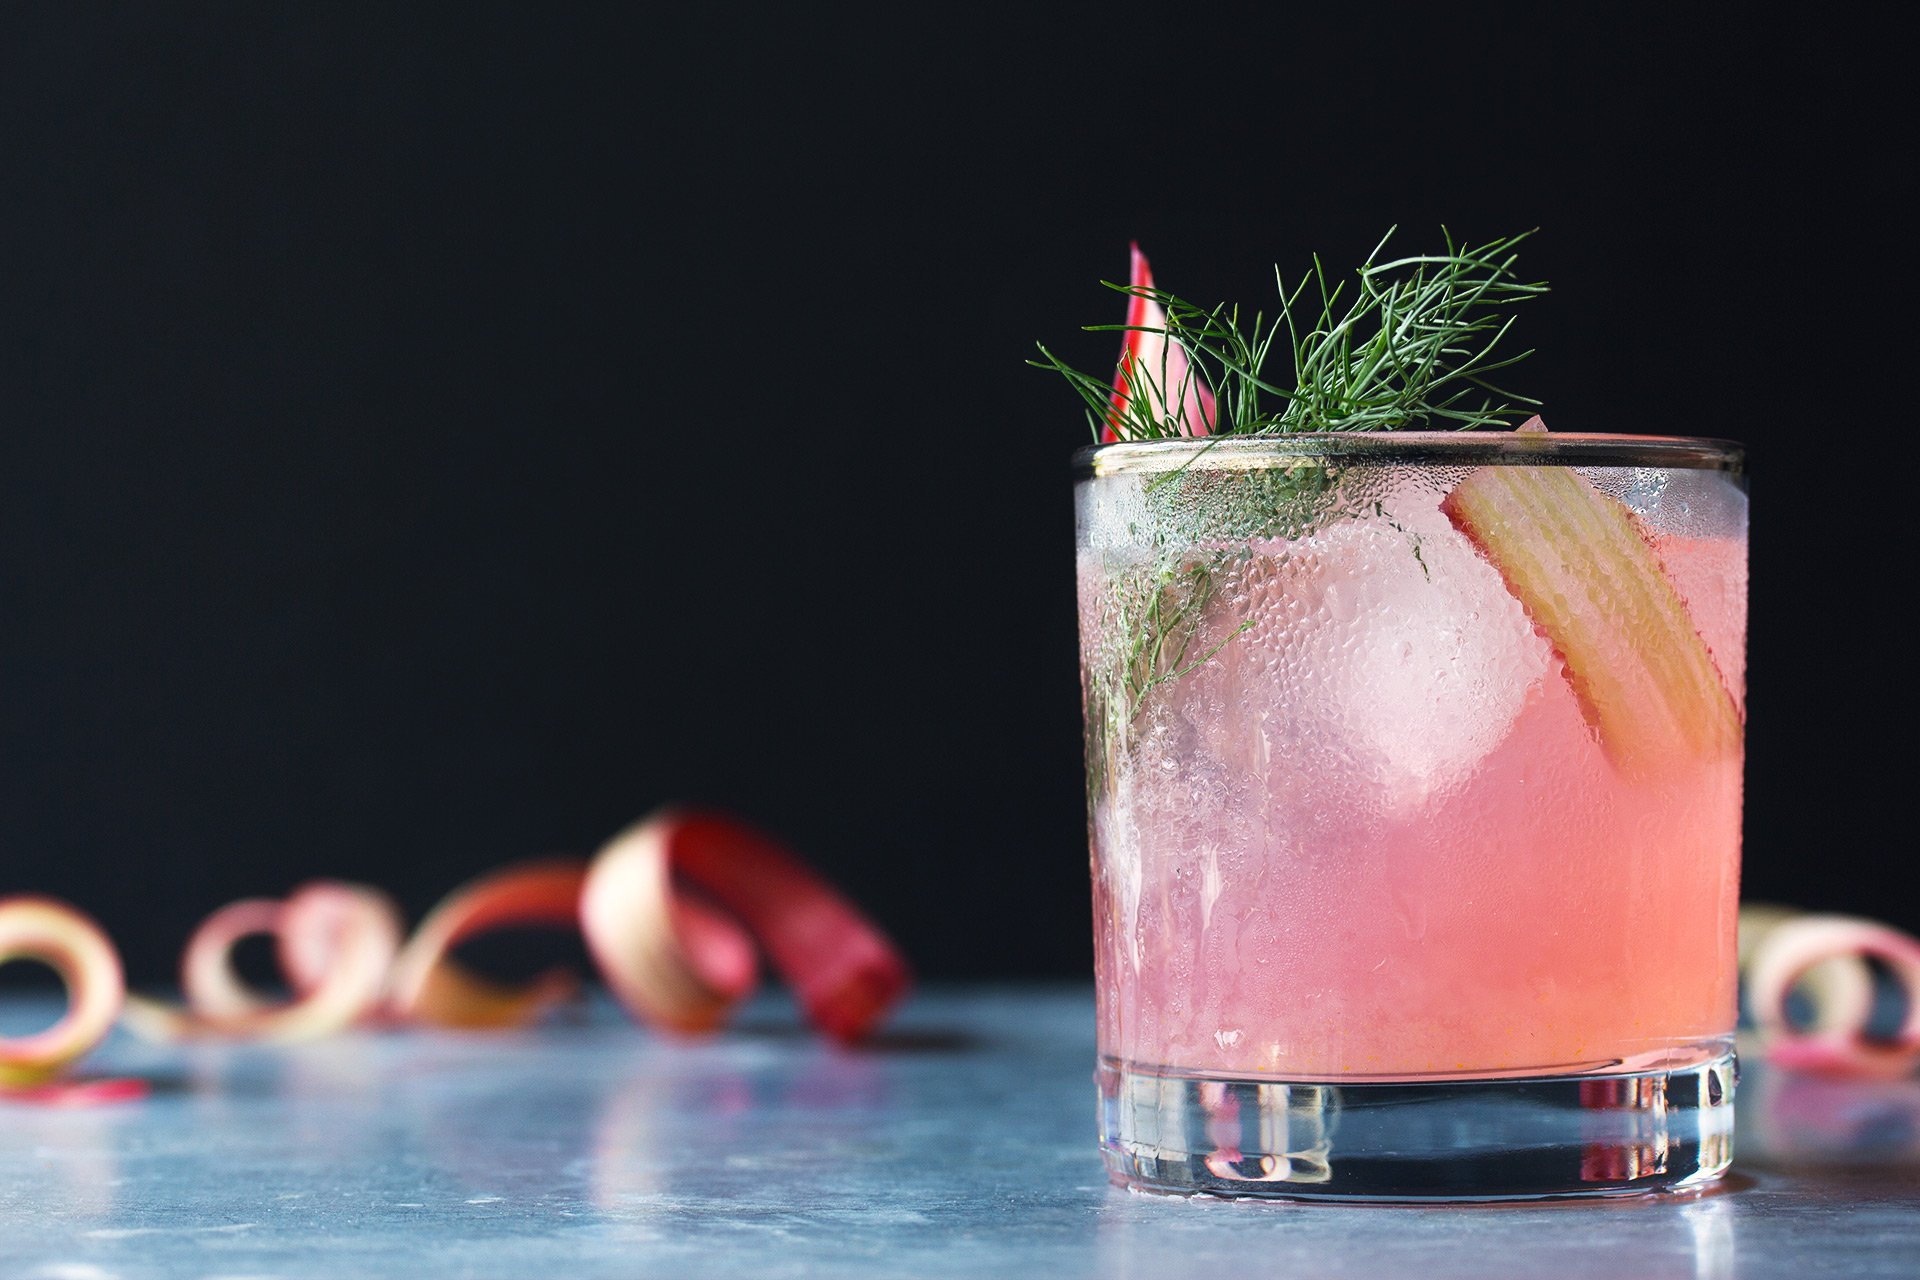 Rhubarb, Fennel & Vermouth Cocktail | HonestlyYUM (honestlyyum.com)